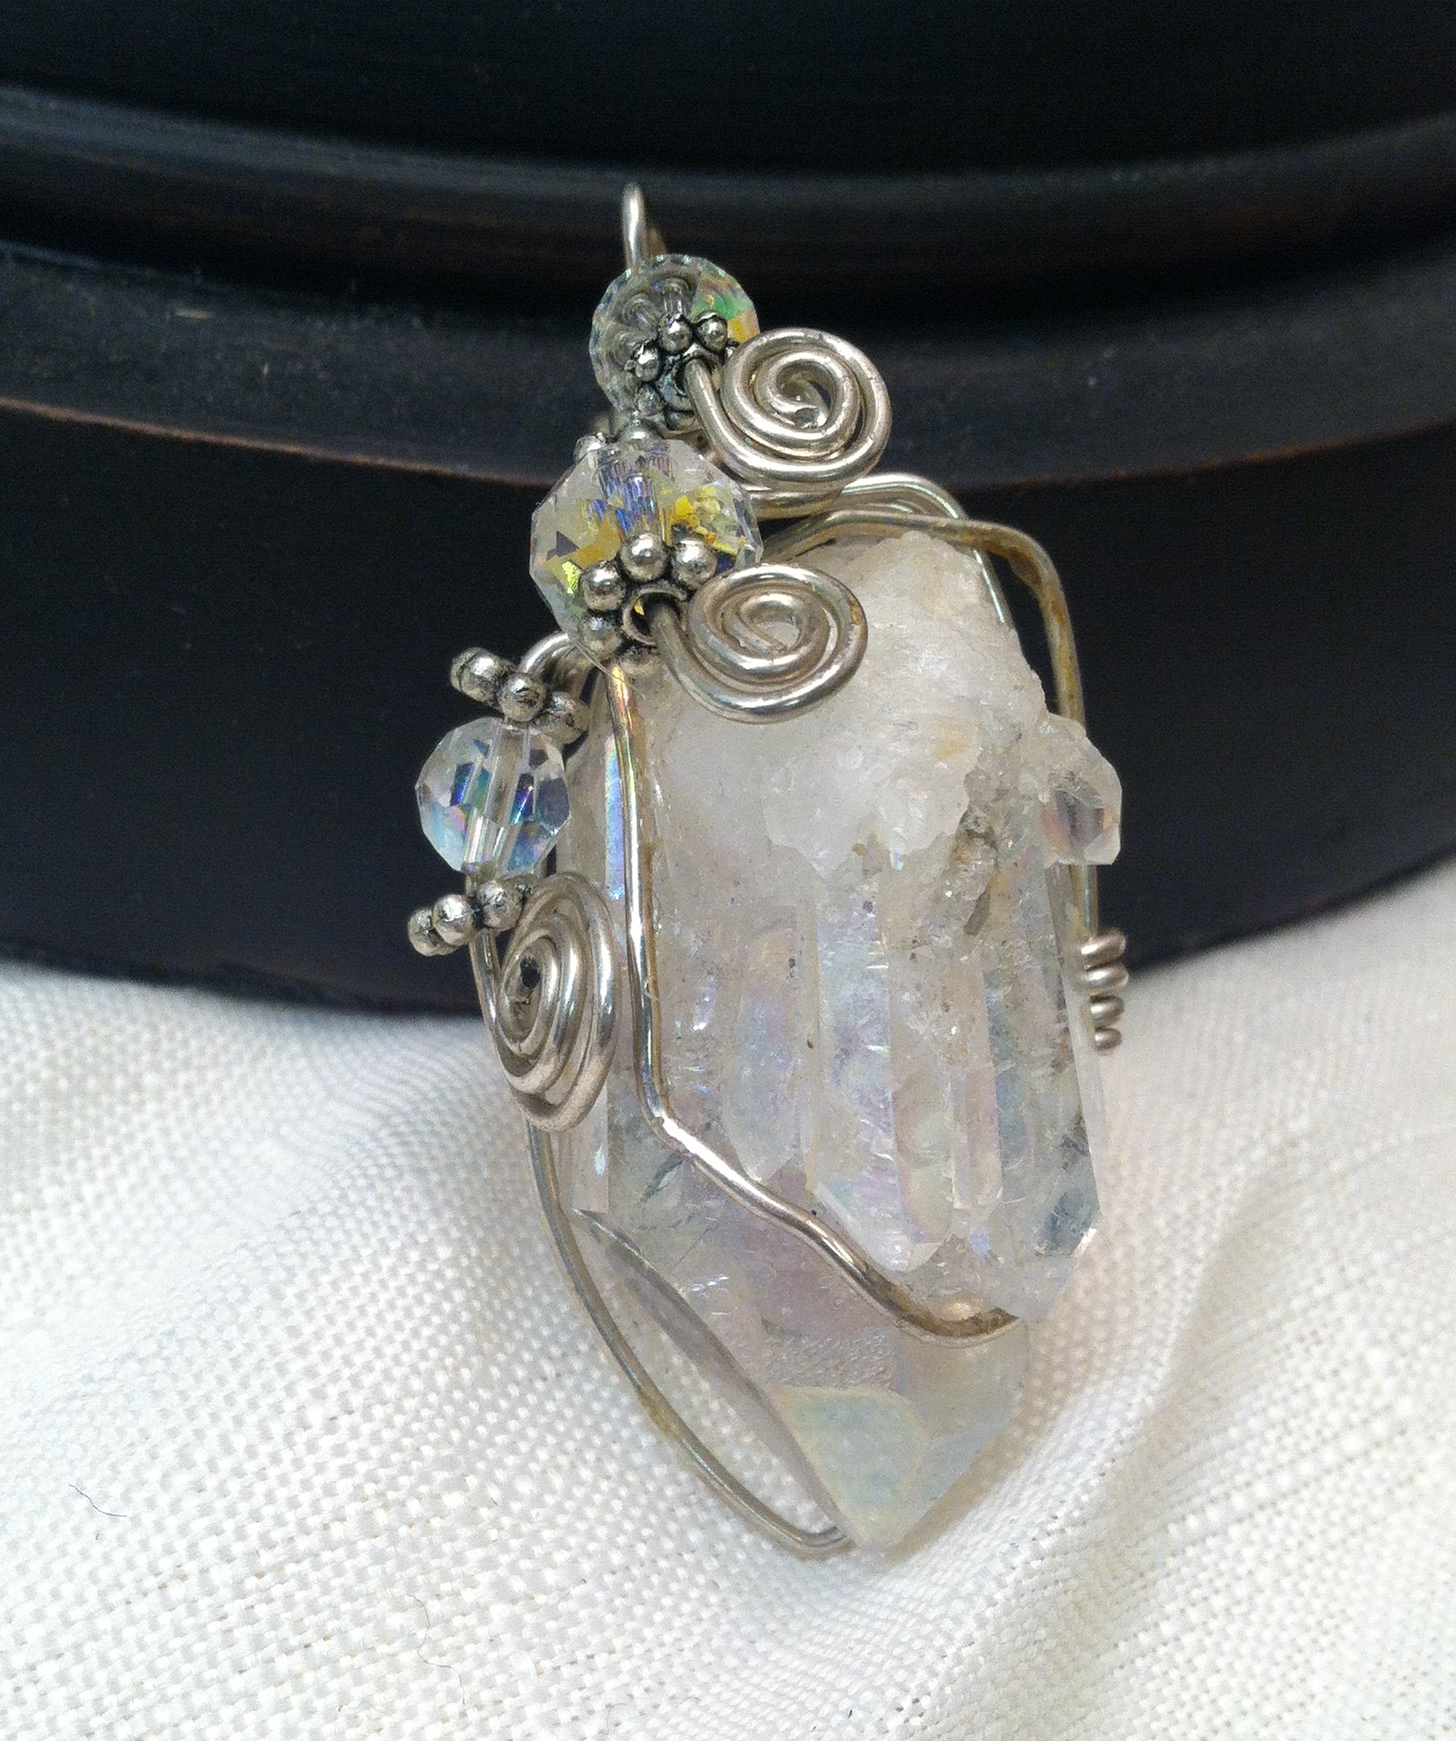 Beginner Wire Wrapping instruction - The Silver Chest